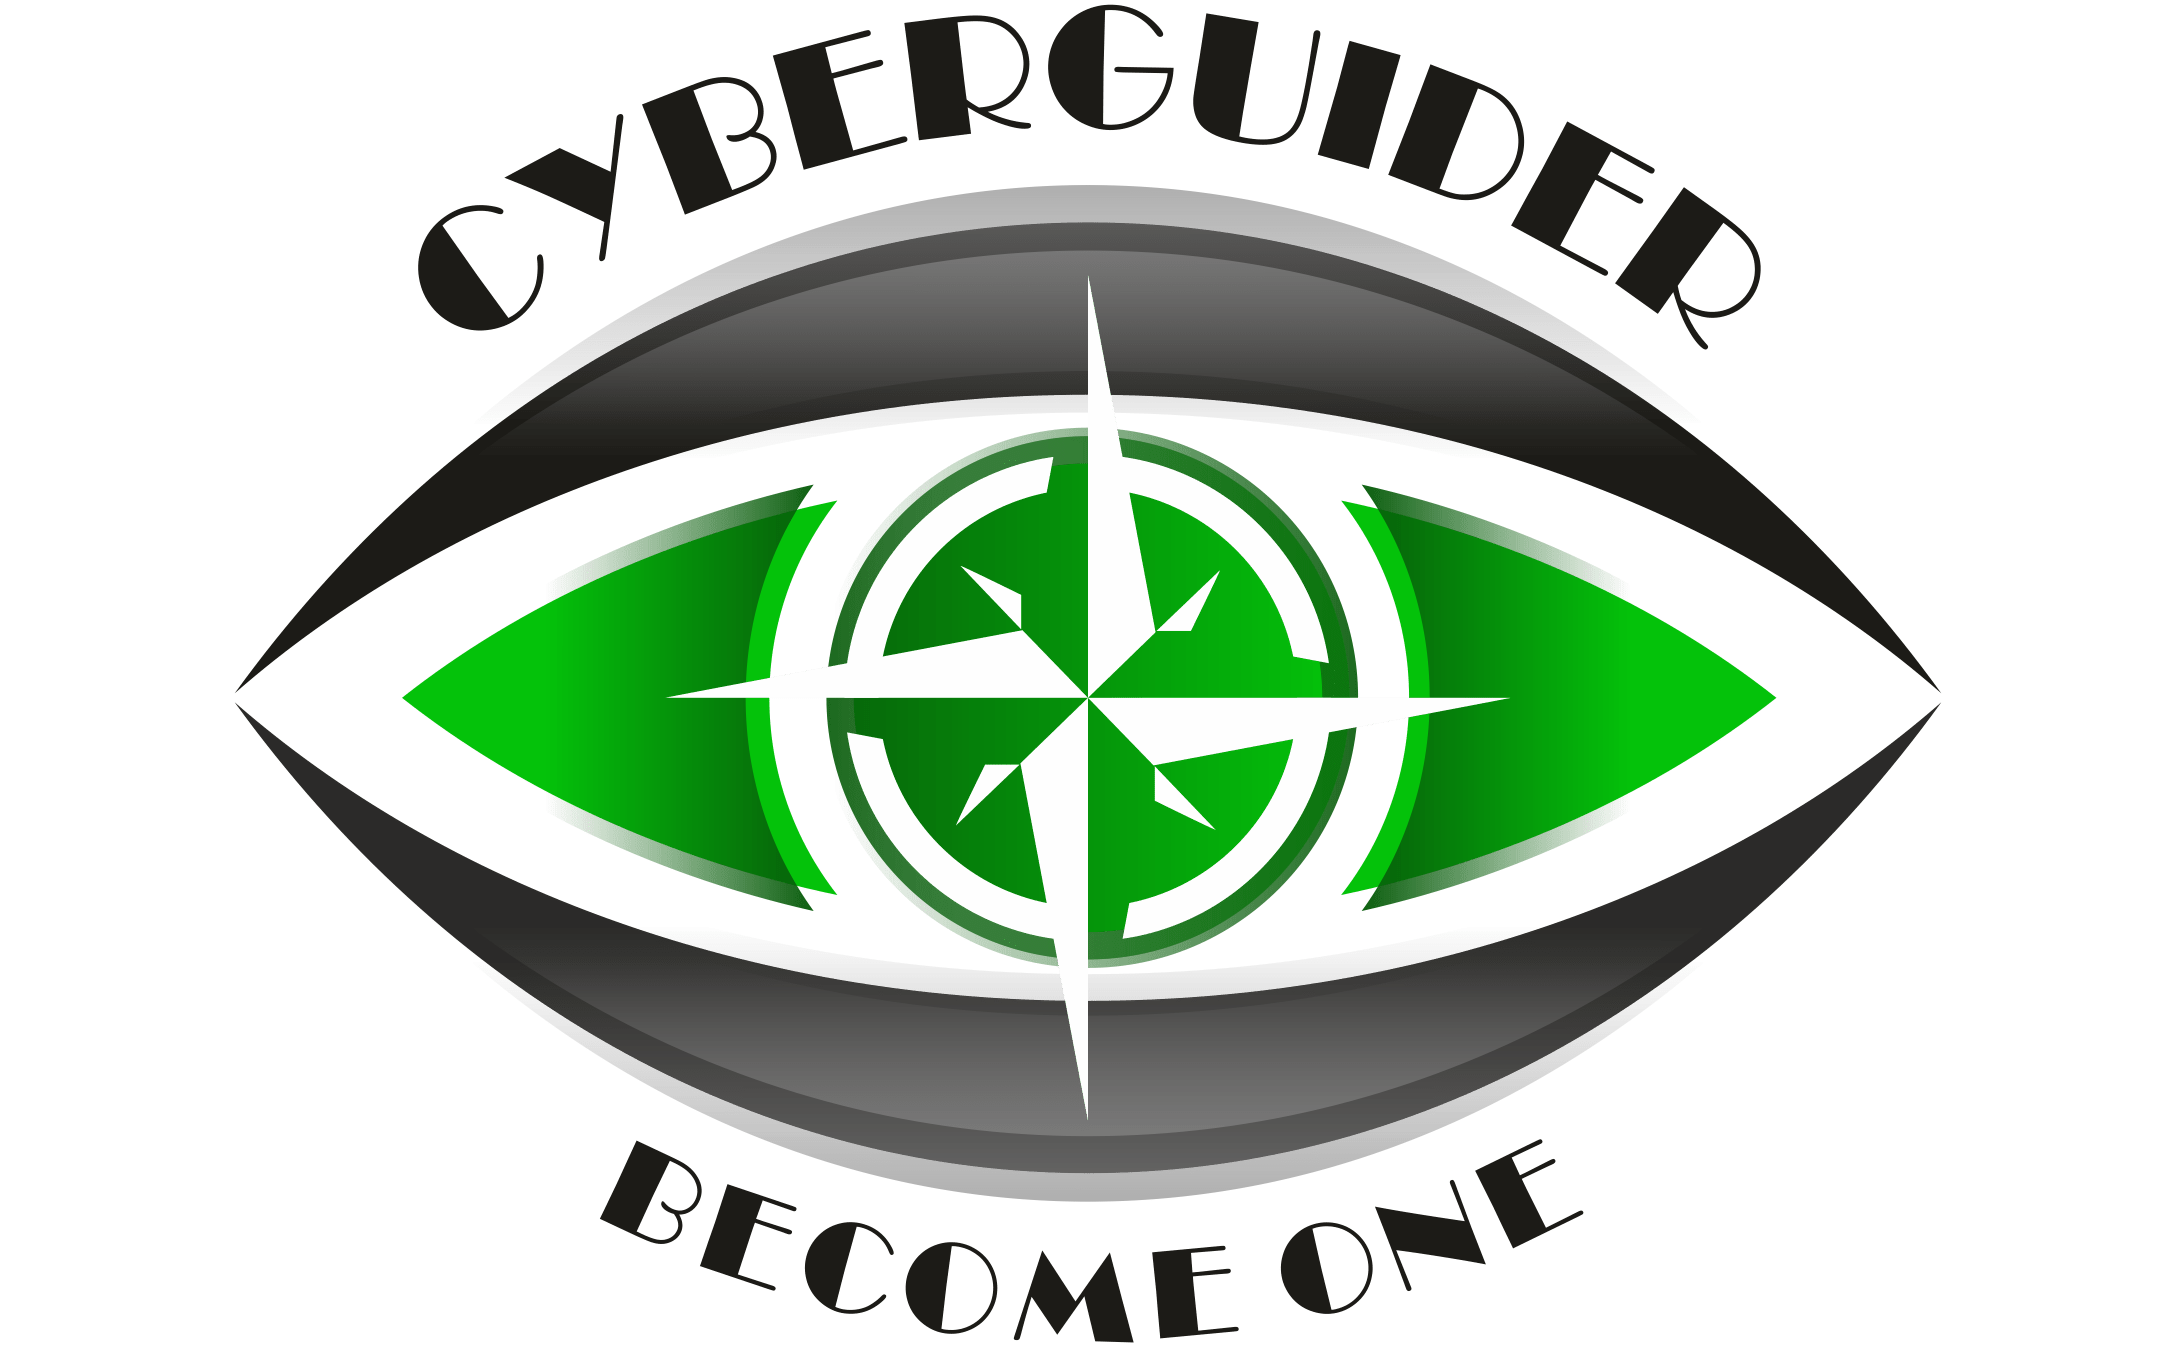 CyberGuider IT Services